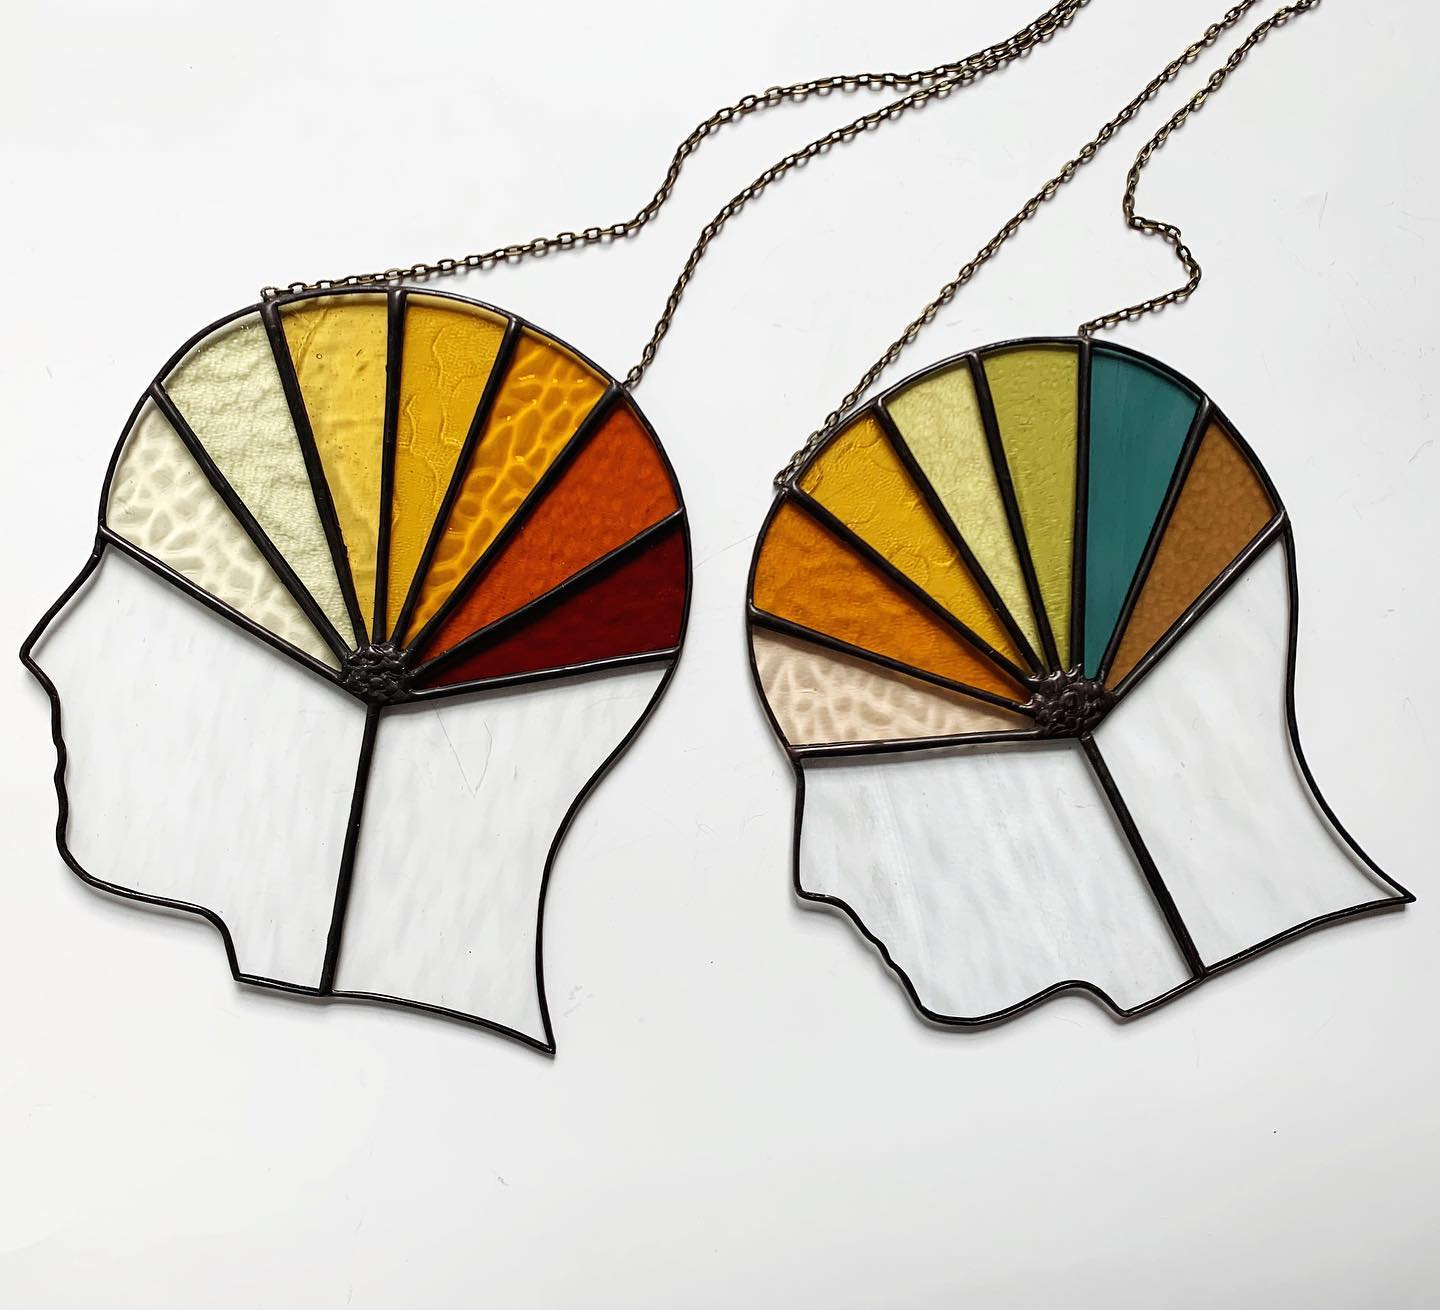 Two stained glass pieces silhouettes with vibrant colours in the brain from Forest City Stained Glass.